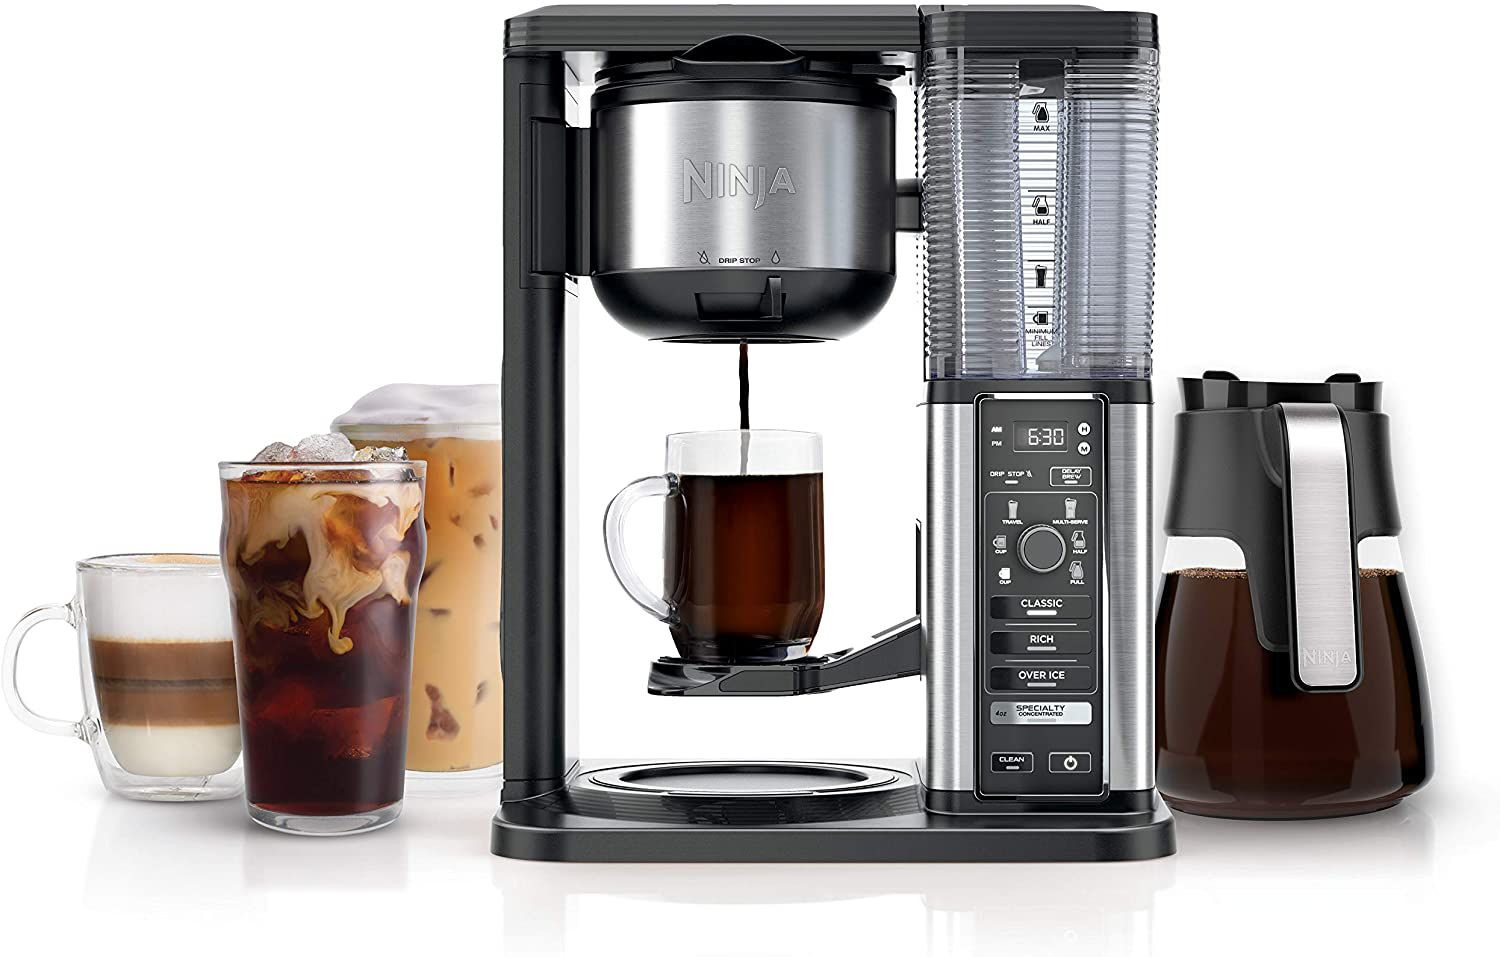 Ninja CM401 Specialty Coffee Maker with Glass Carafe